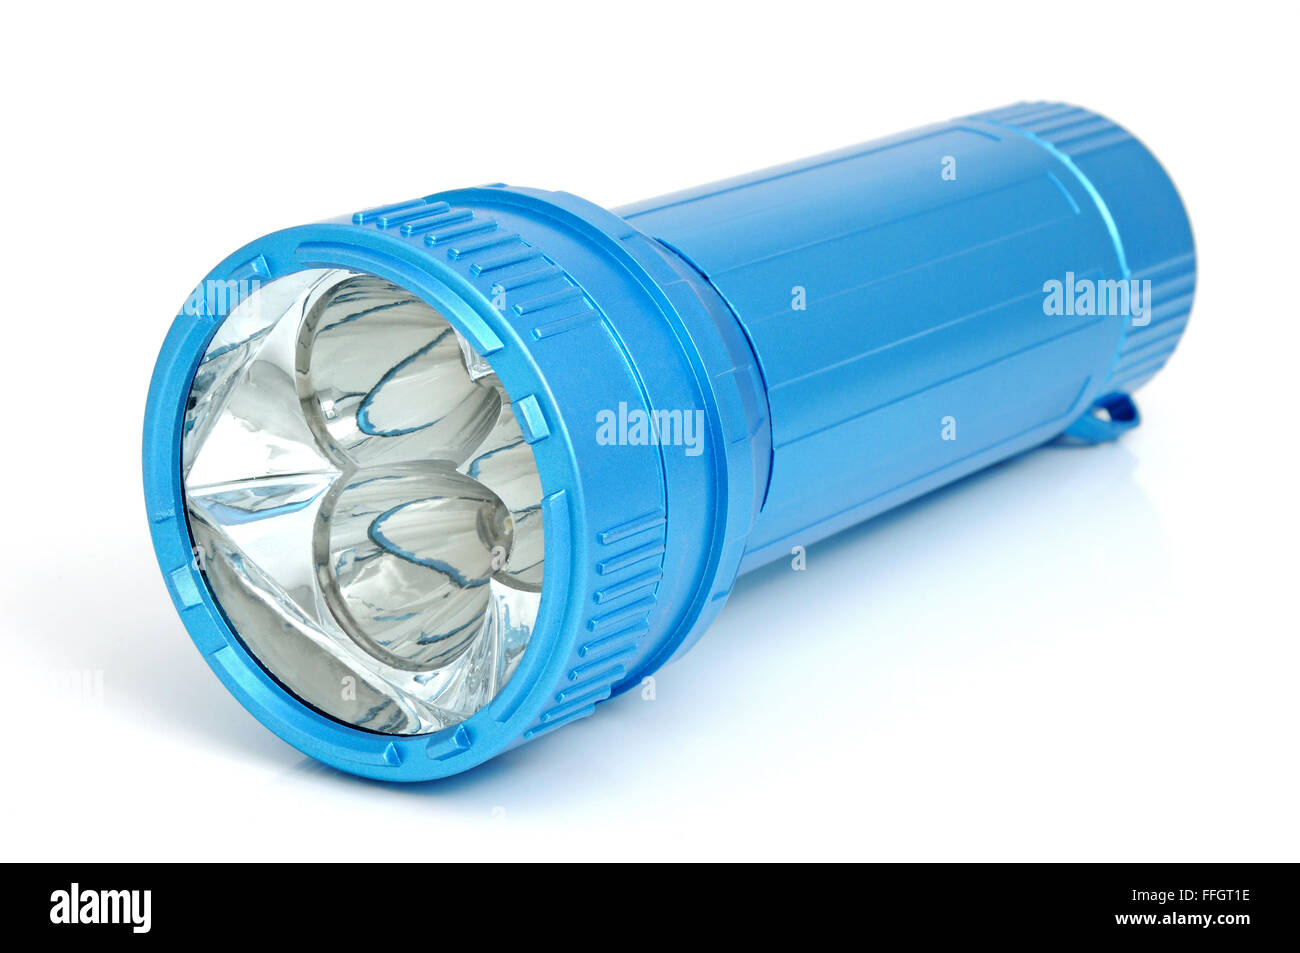 Electric LED torch isolated on a white background. - Stock Image